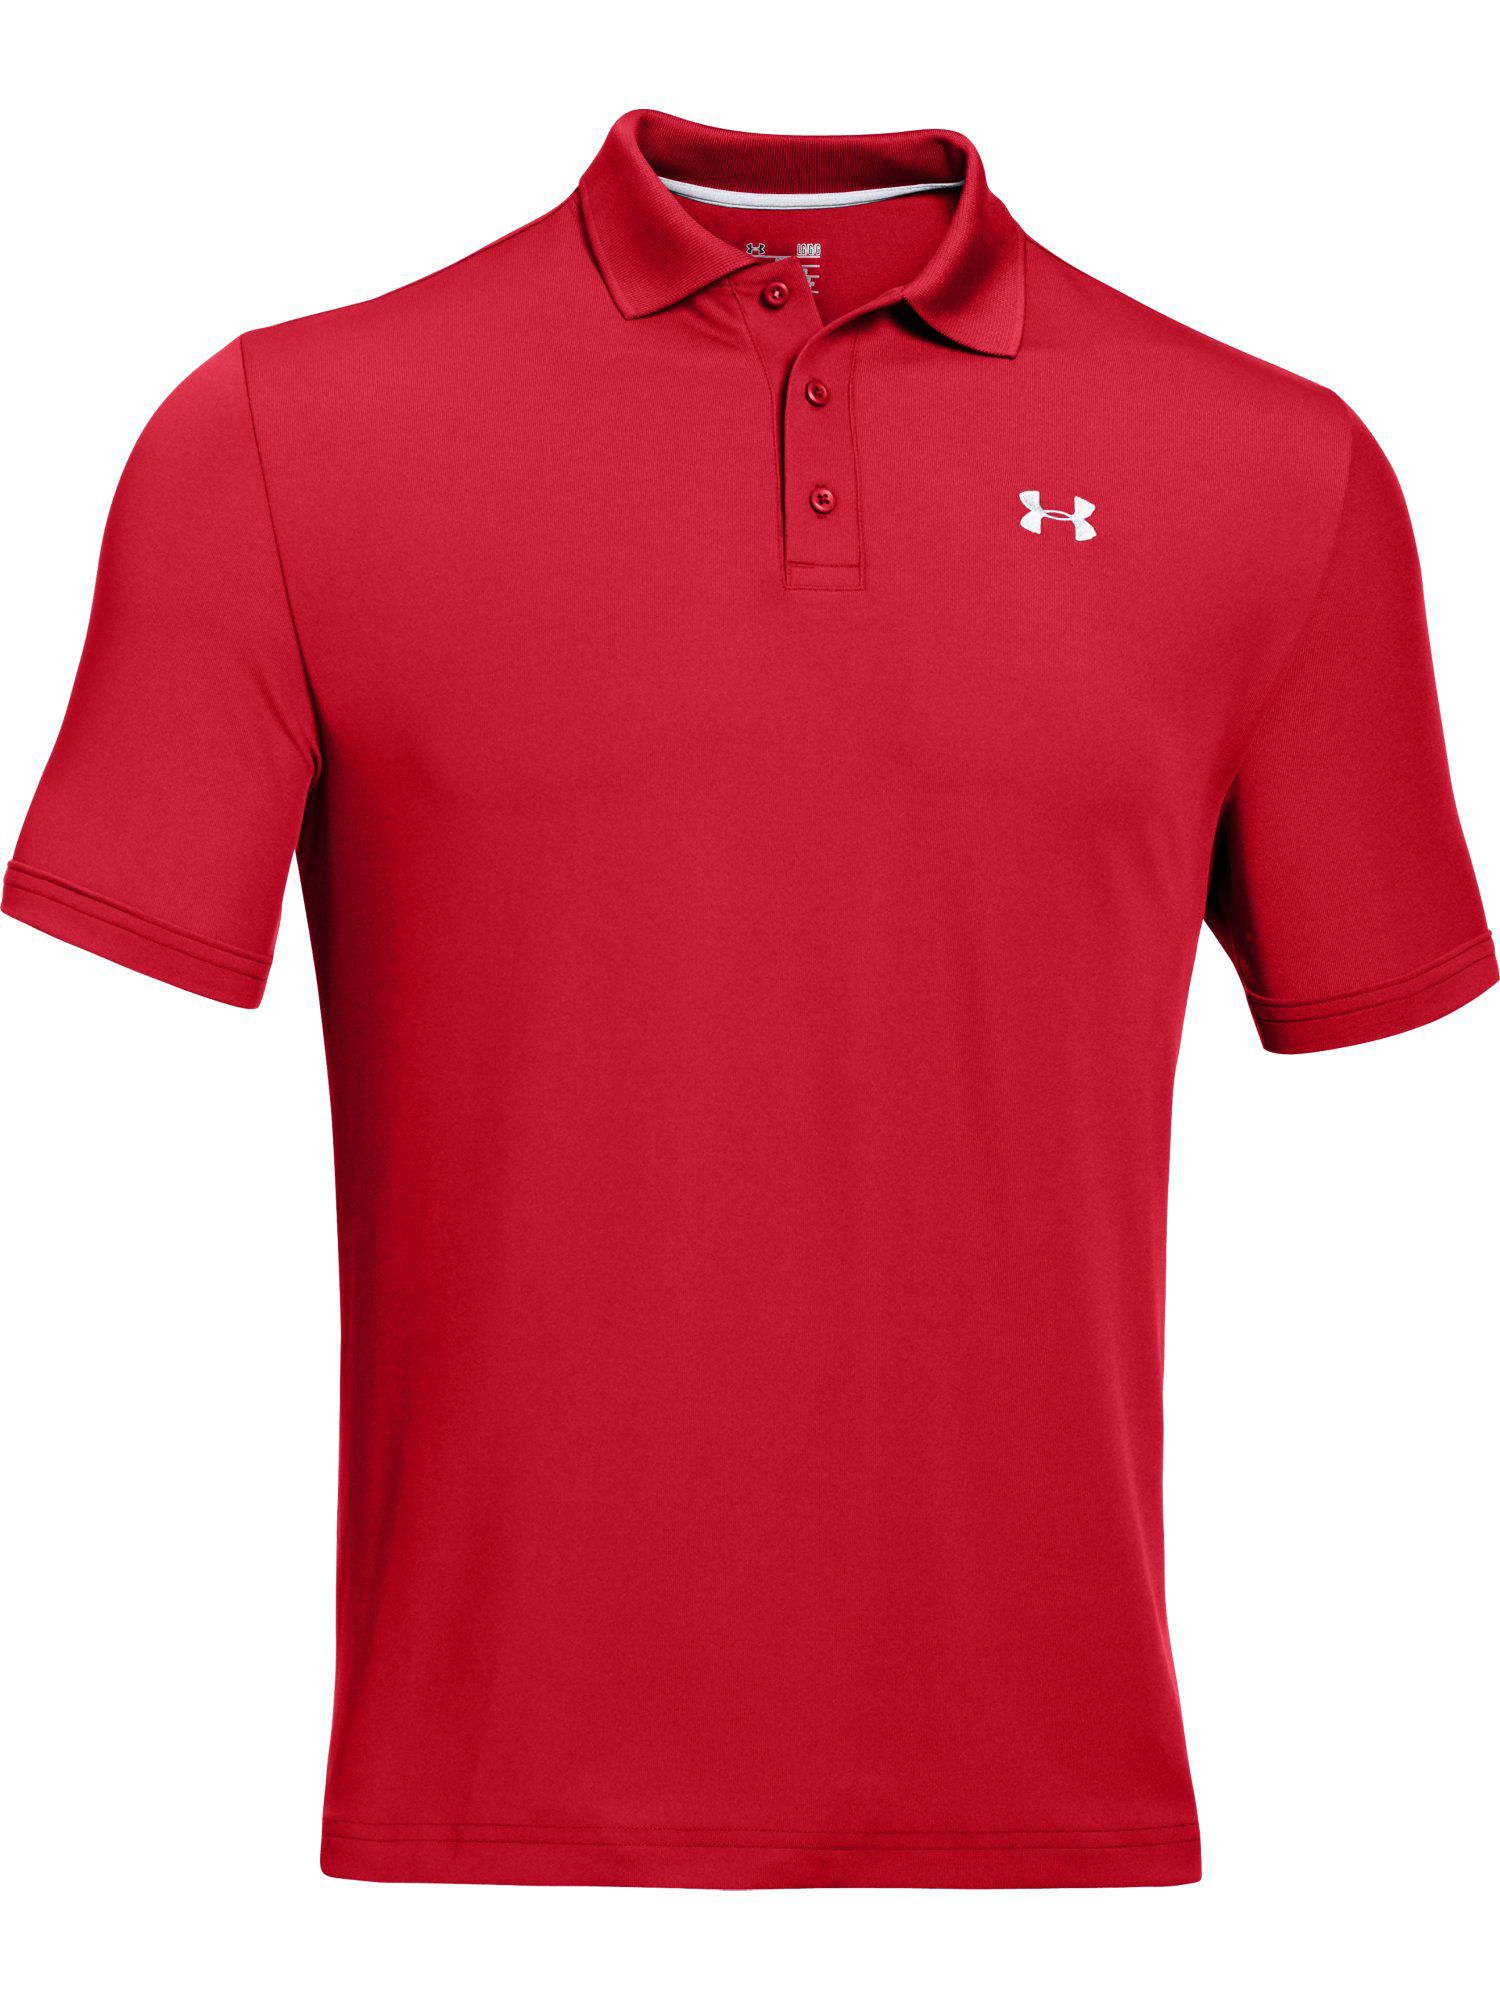 Men's Under Armour Performance Polo, Black